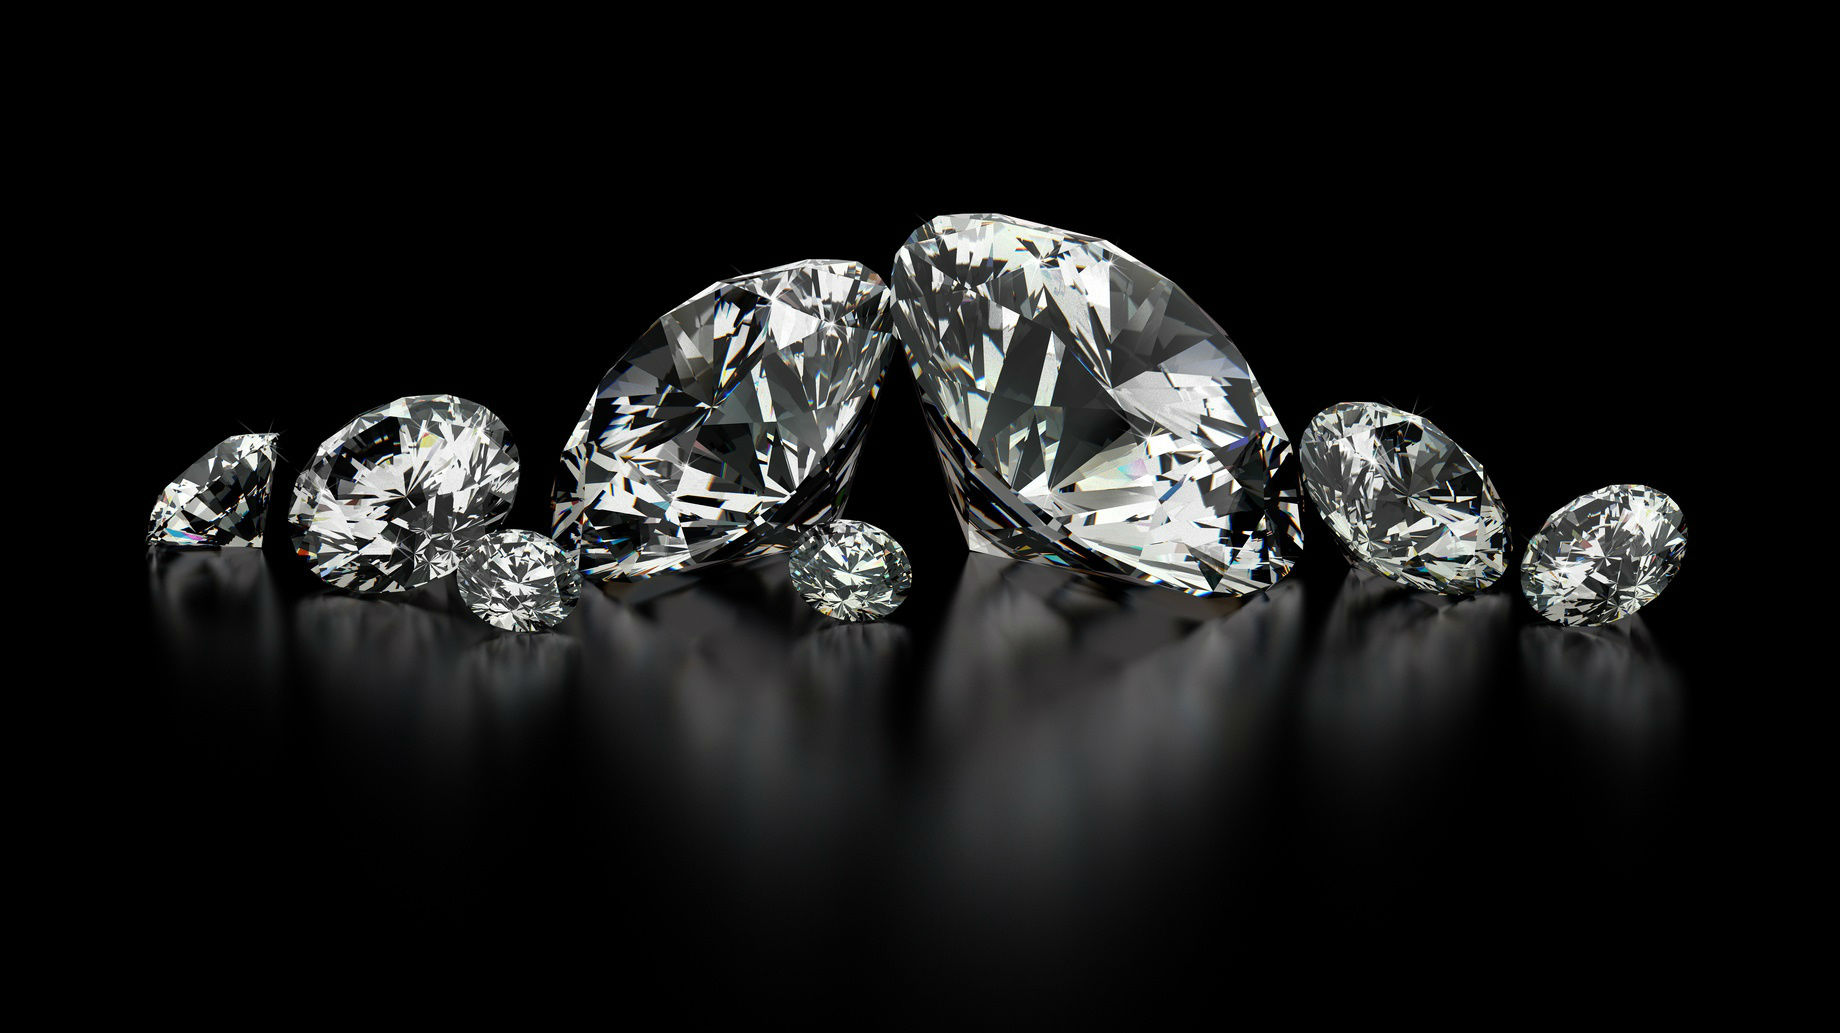 Motek Diamonds by IDC image 63